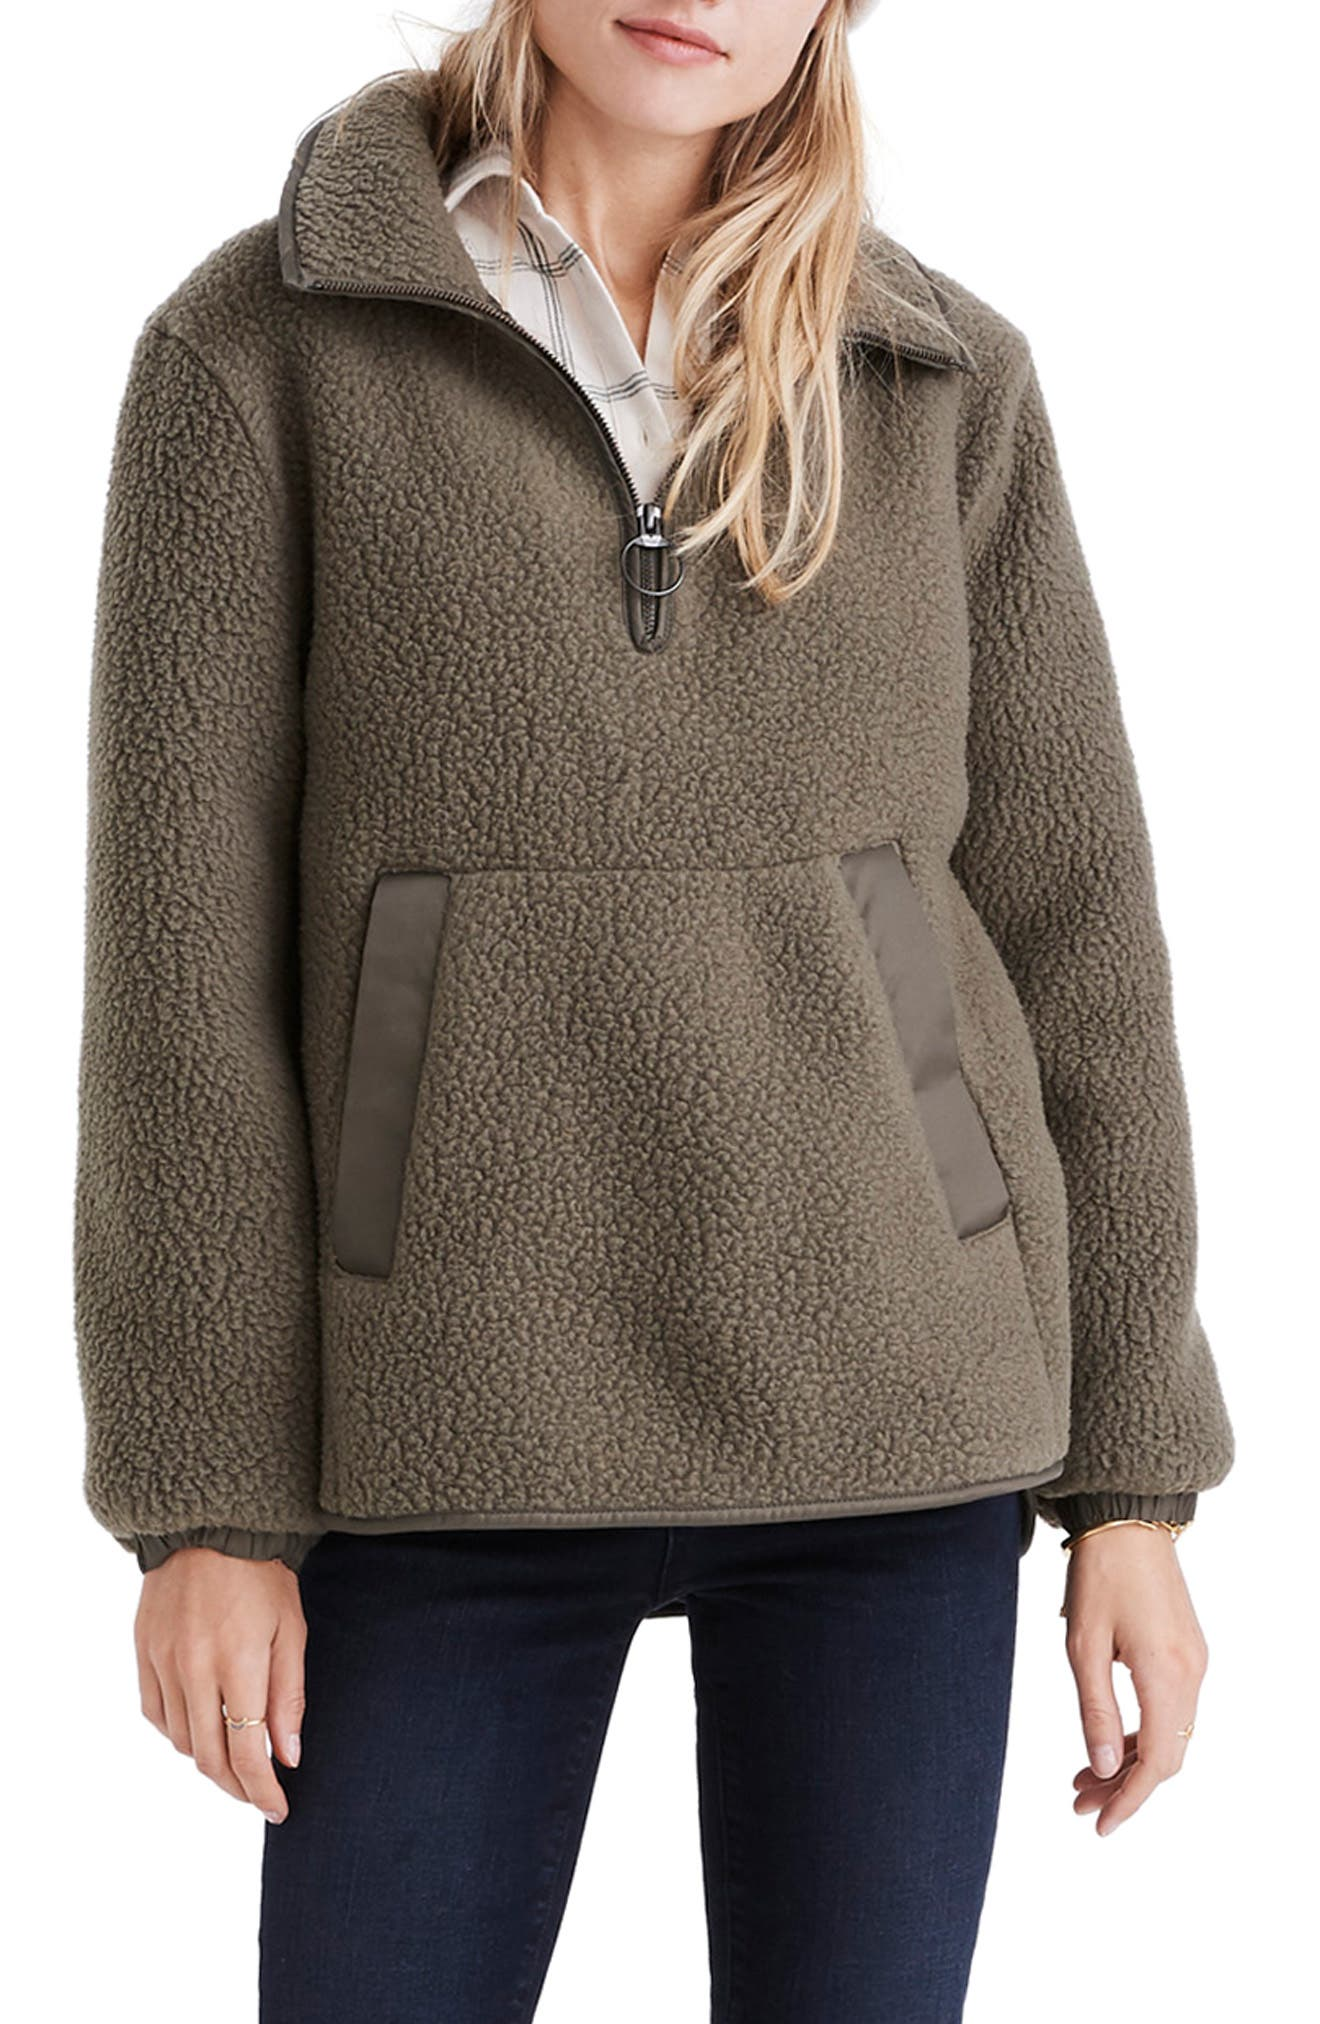 MADEWELL, Polartec<sup>®</sup> Fleece Popover Jacket, Main thumbnail 1, color, 300